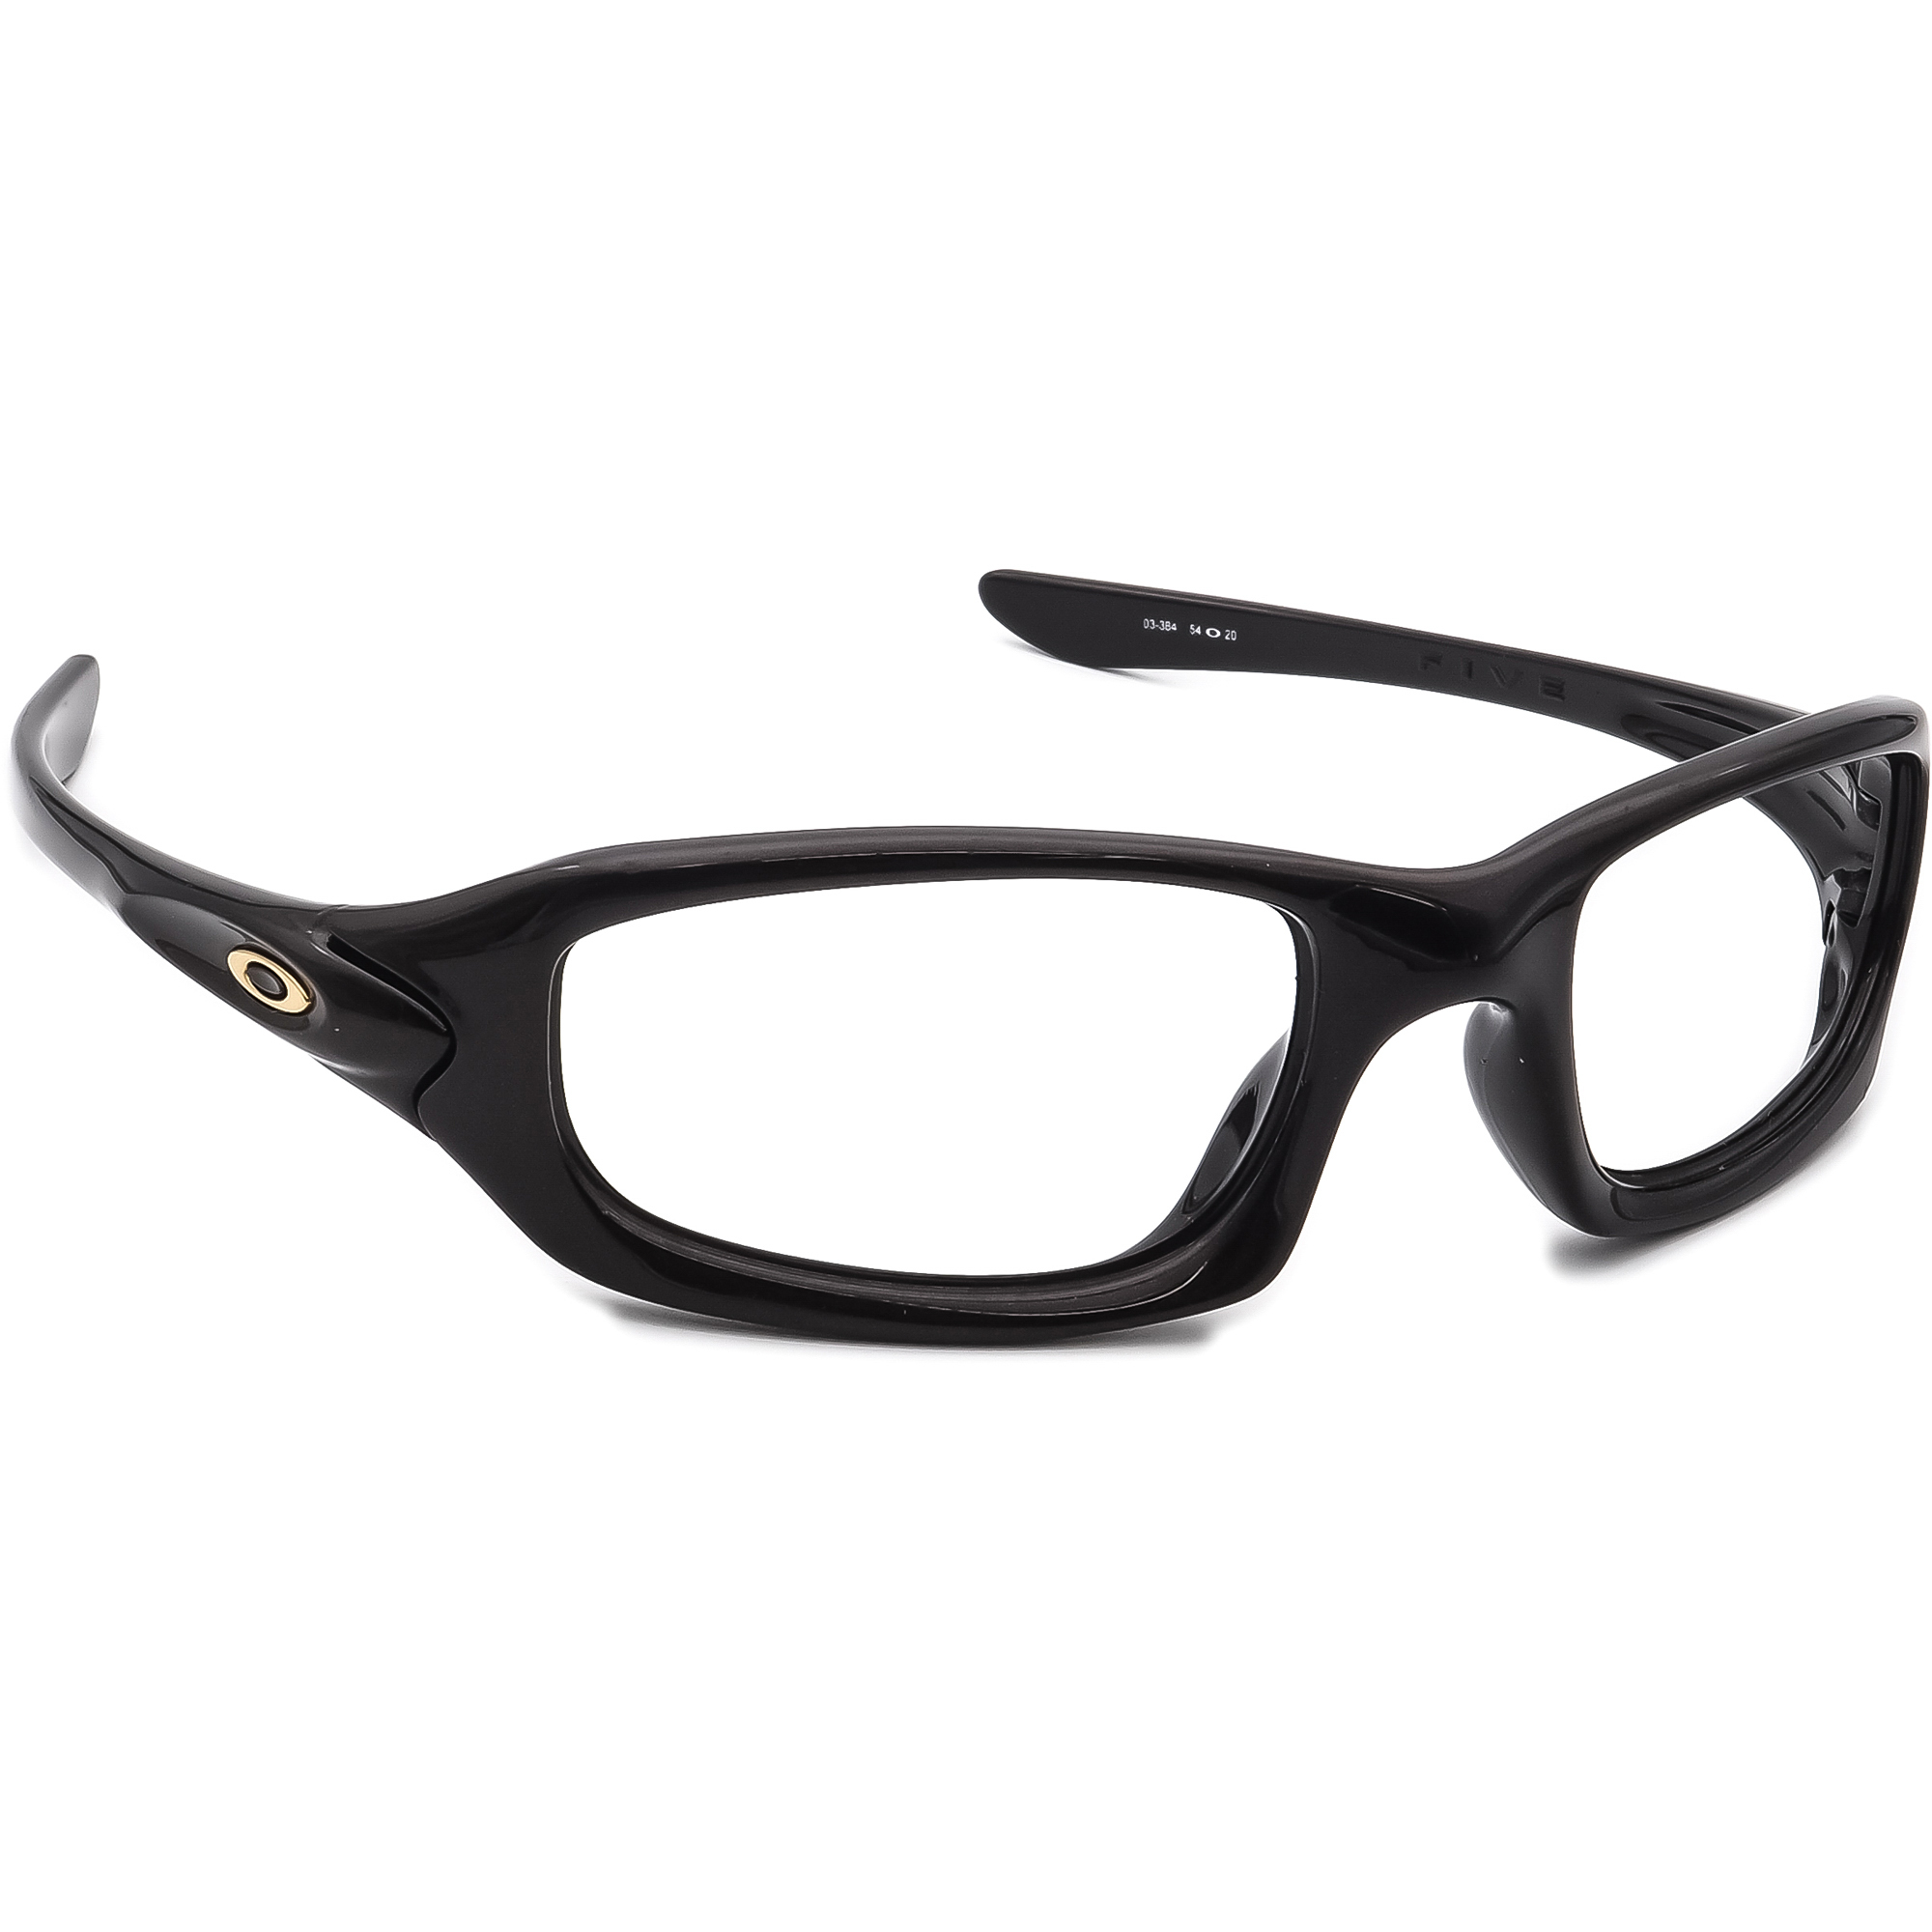 Oakley Five 03-364 Sunglasses Frame Only